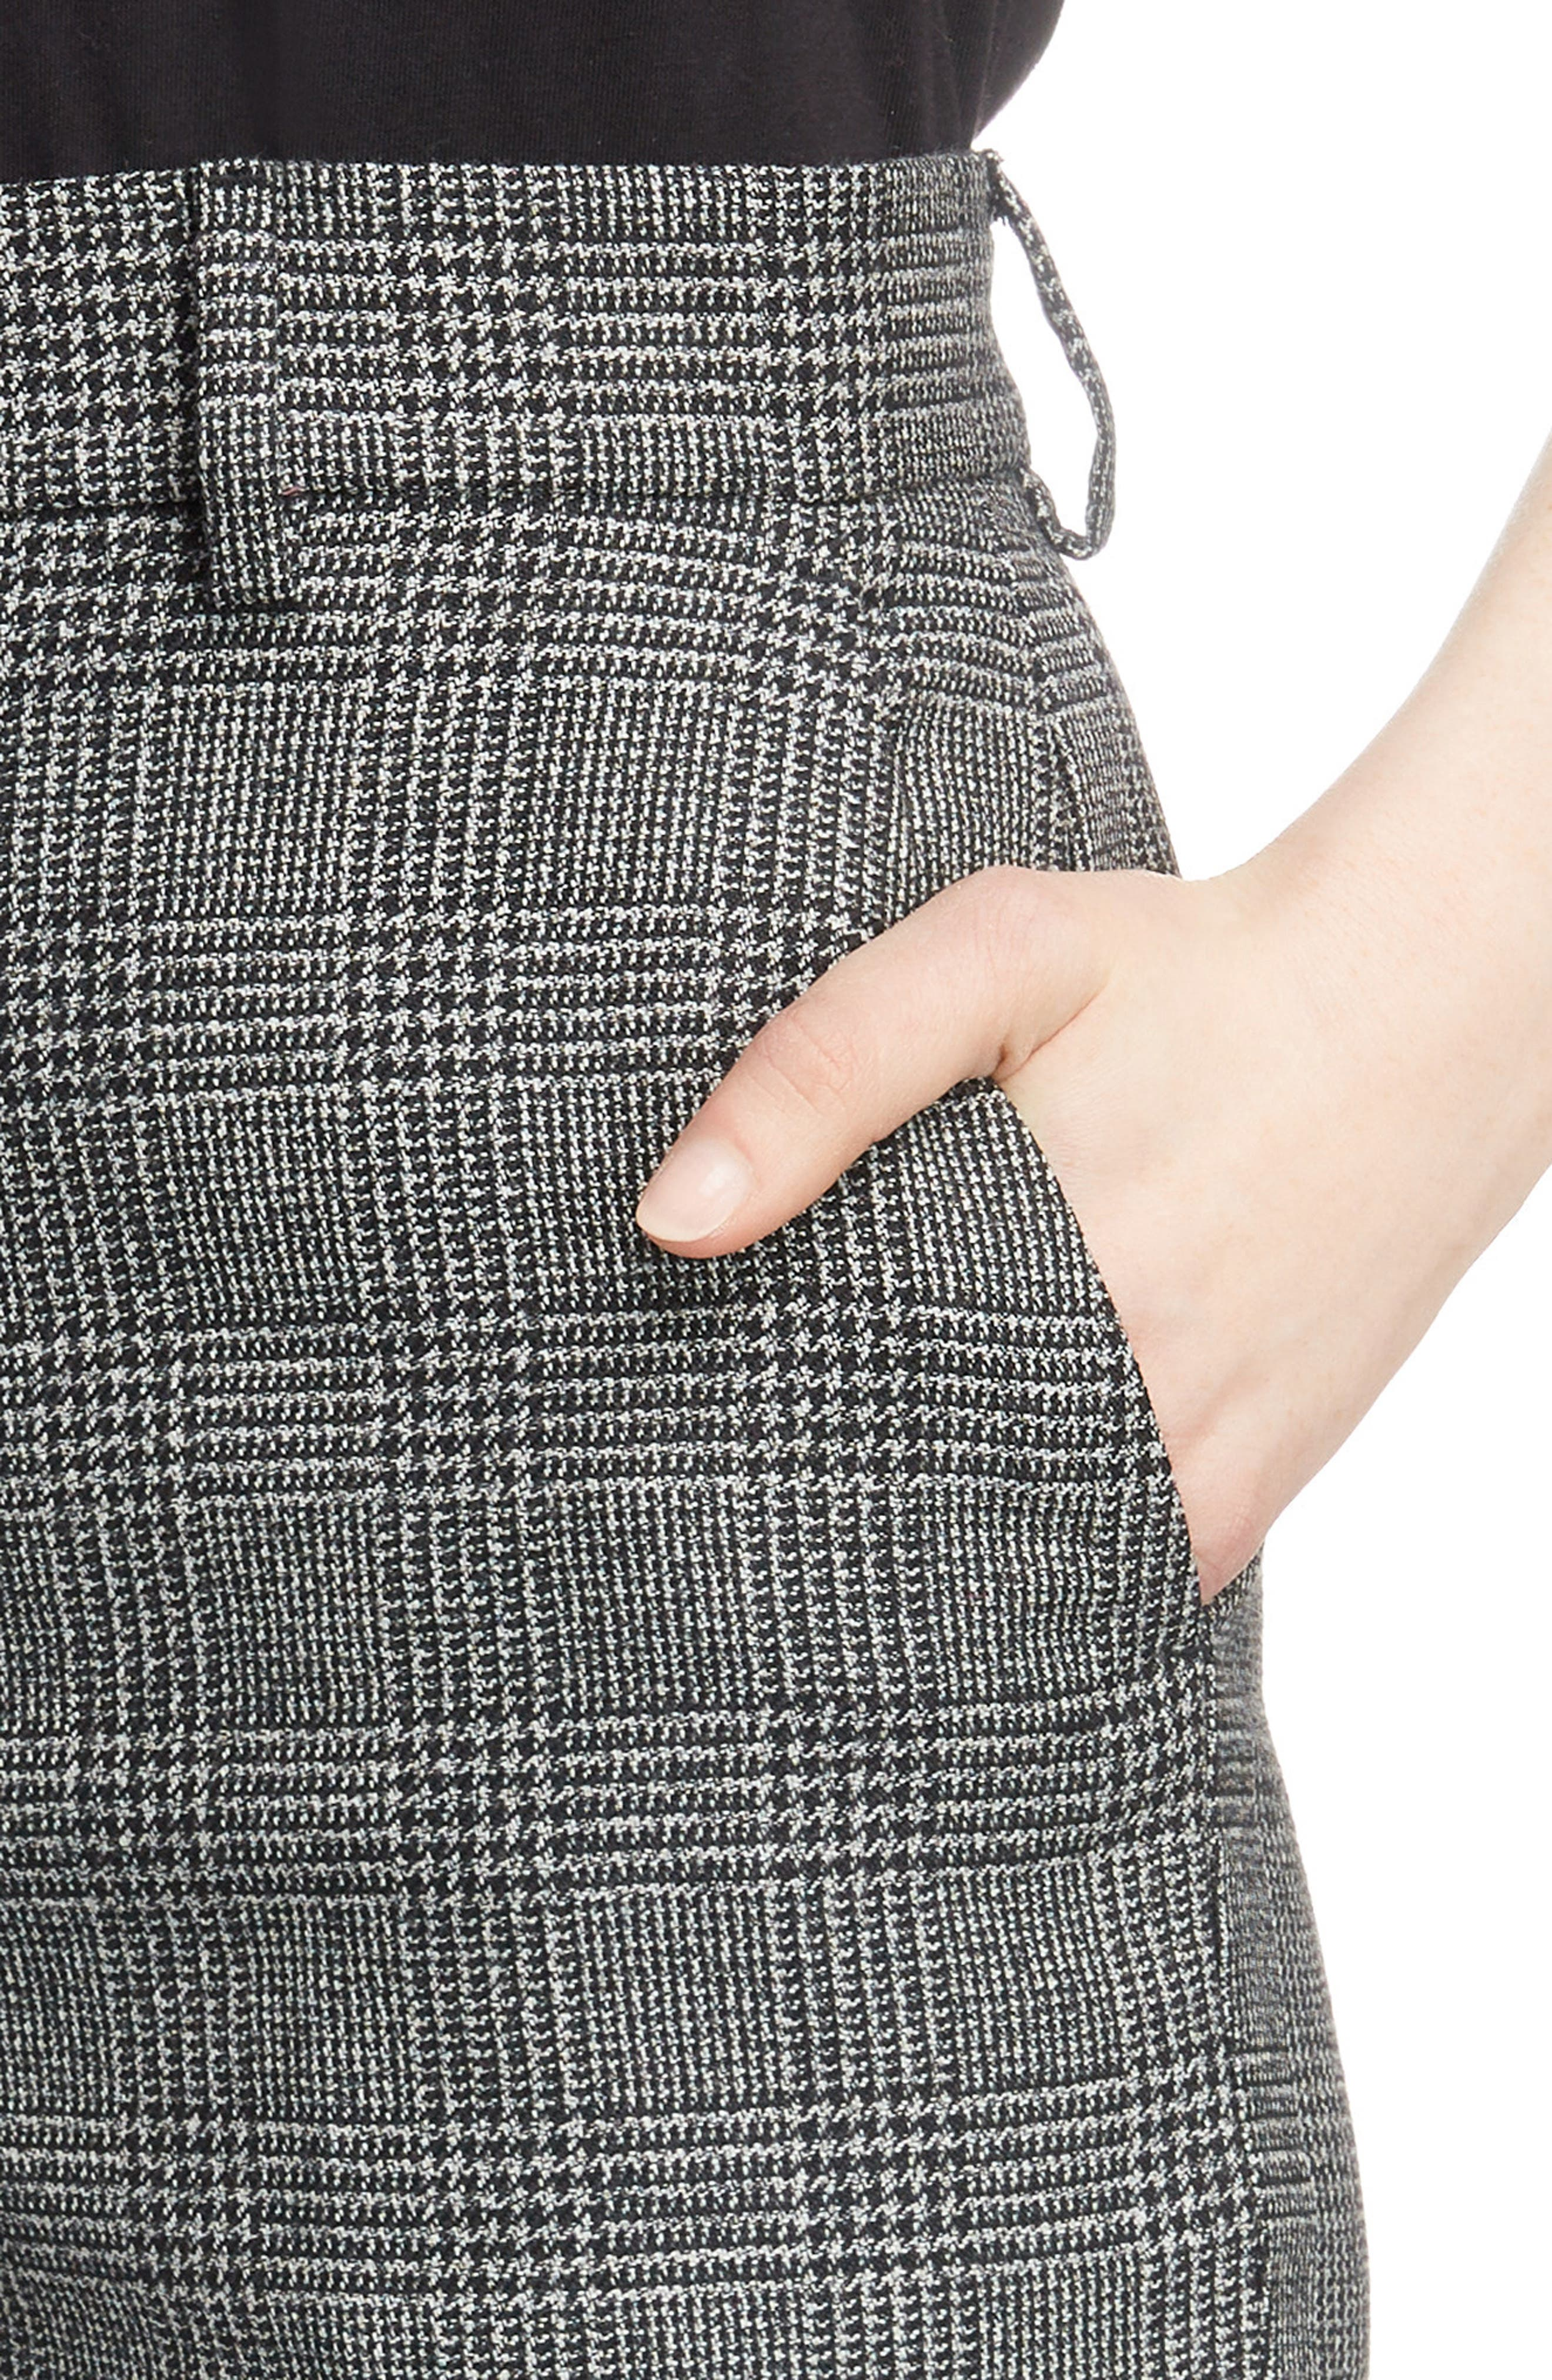 Prince of Wales Wool Carrot Trousers,                             Alternate thumbnail 4, color,                             1070-BLACK/ WHITE